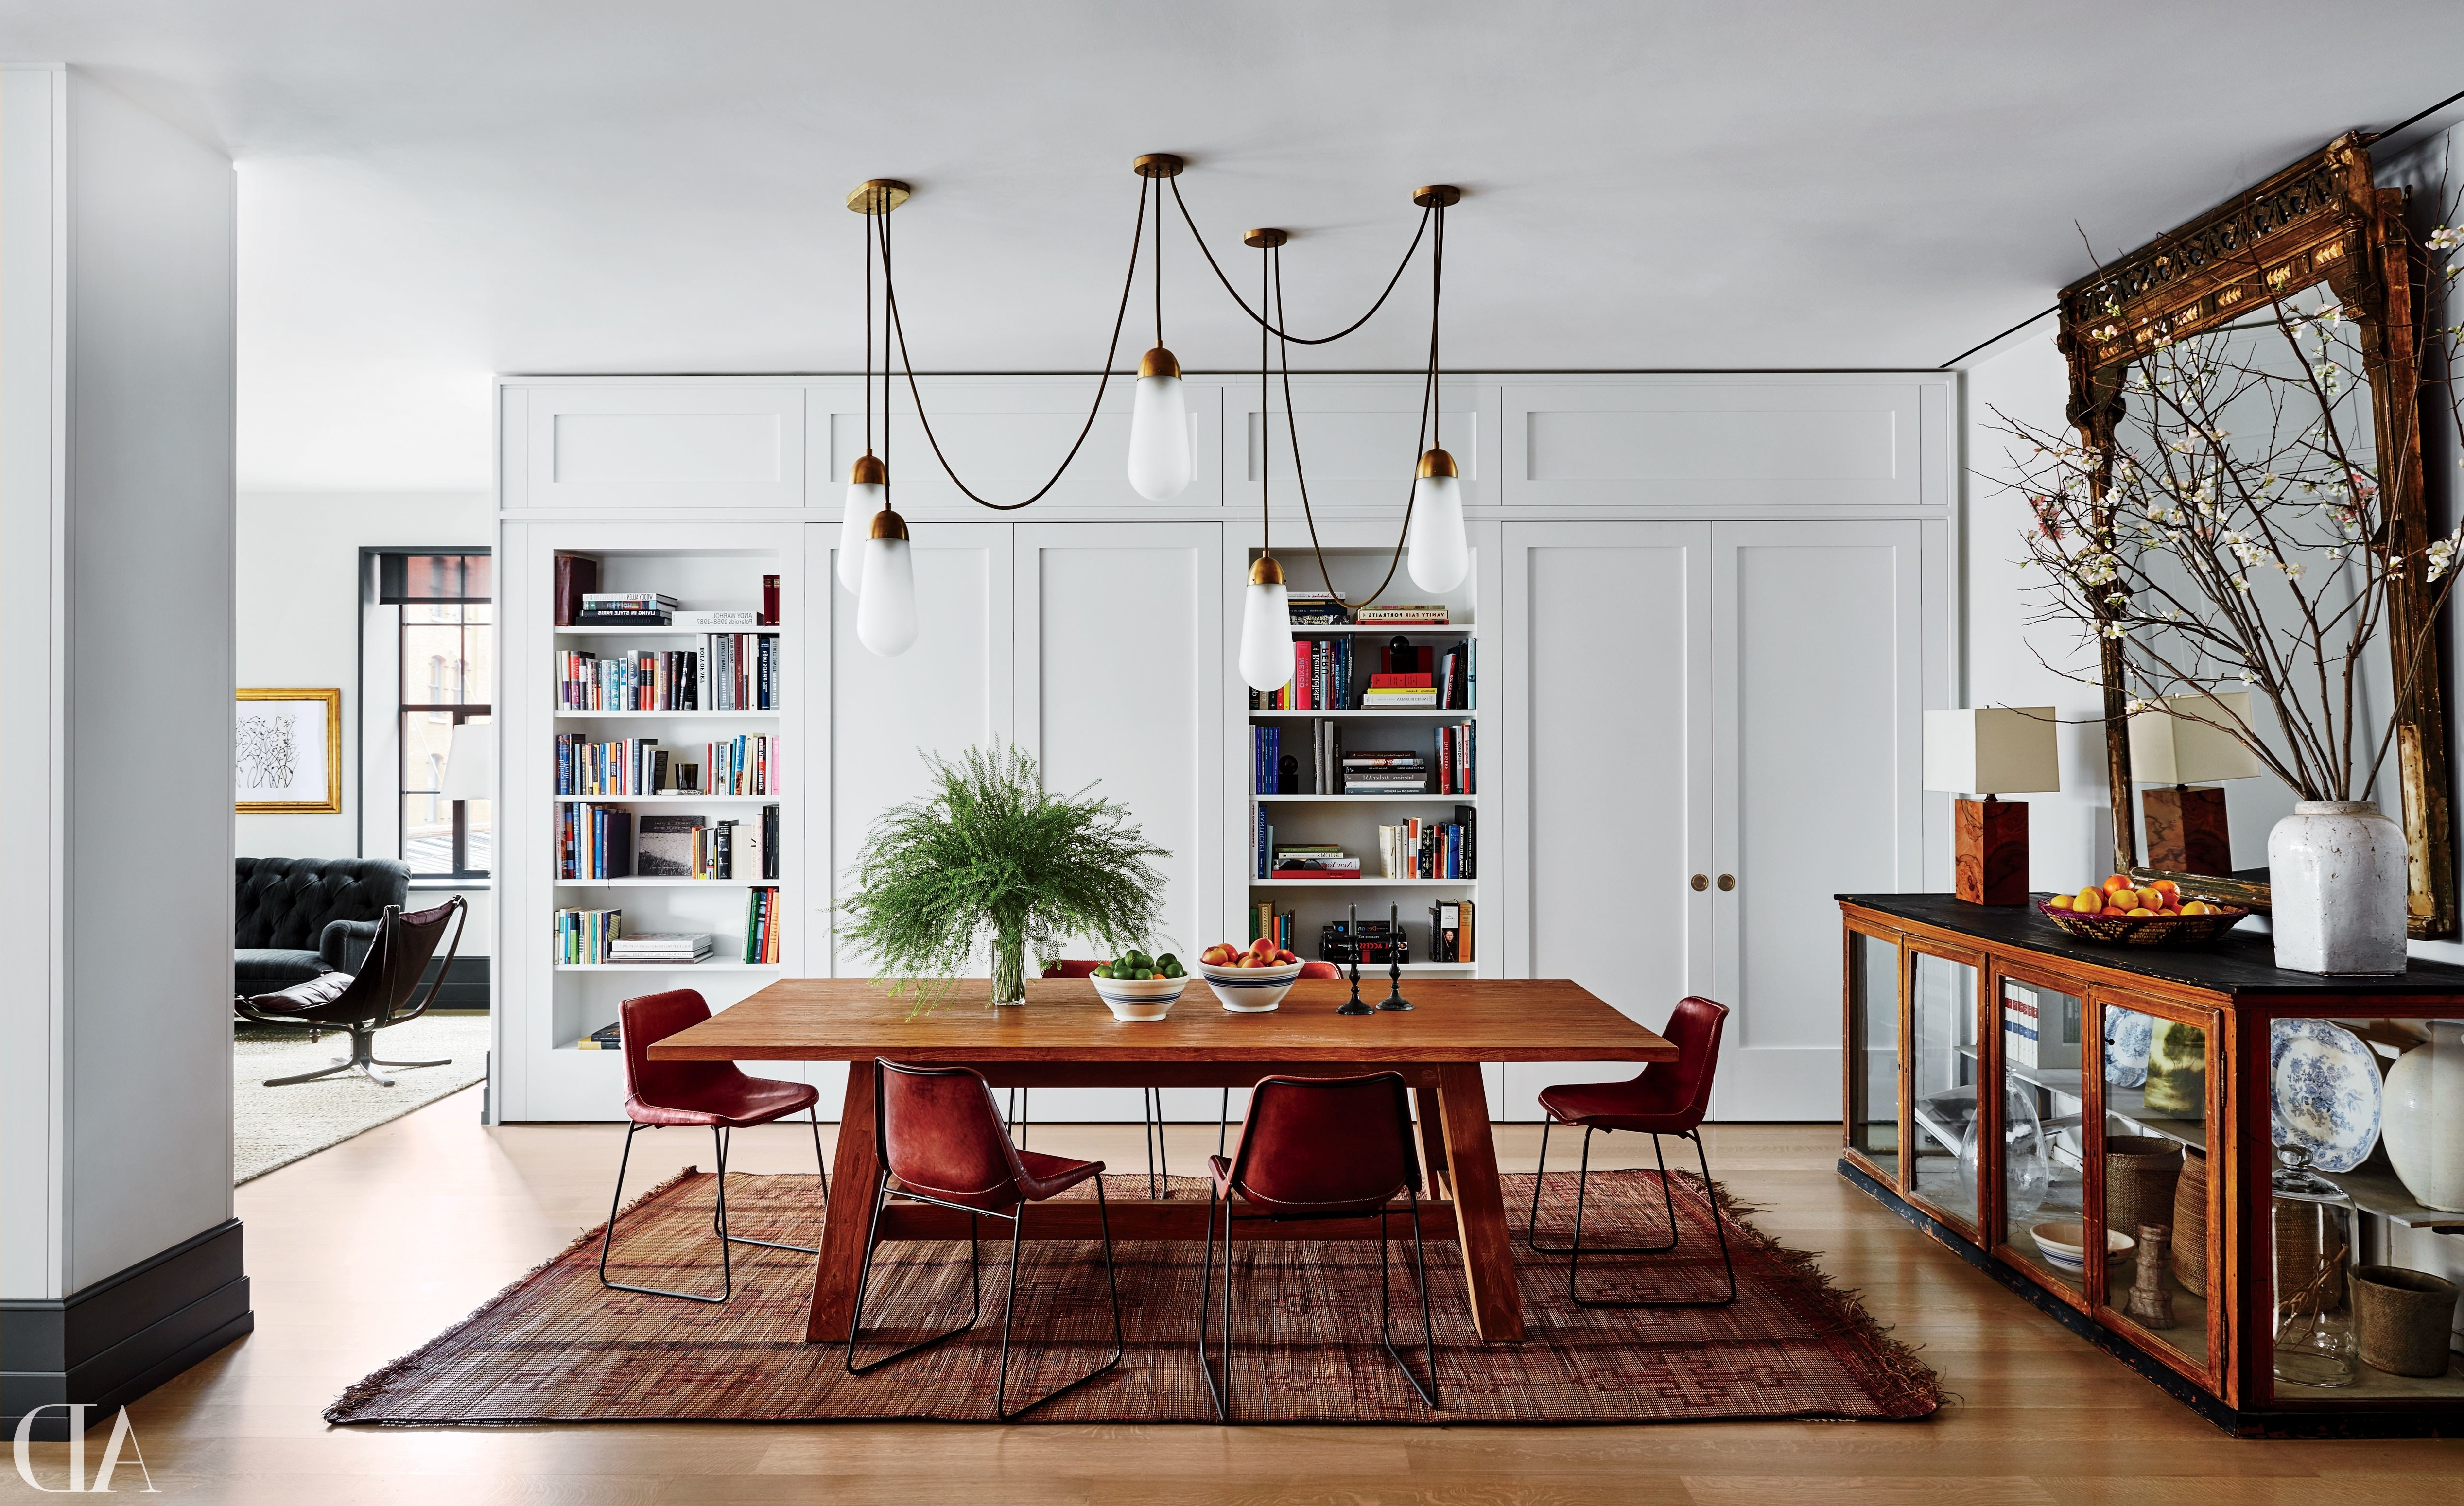 Laurent Round Dining Tables With Regard To 2017 Step Inside 47 Celebrity Dining Rooms Photos (View 18 of 25)